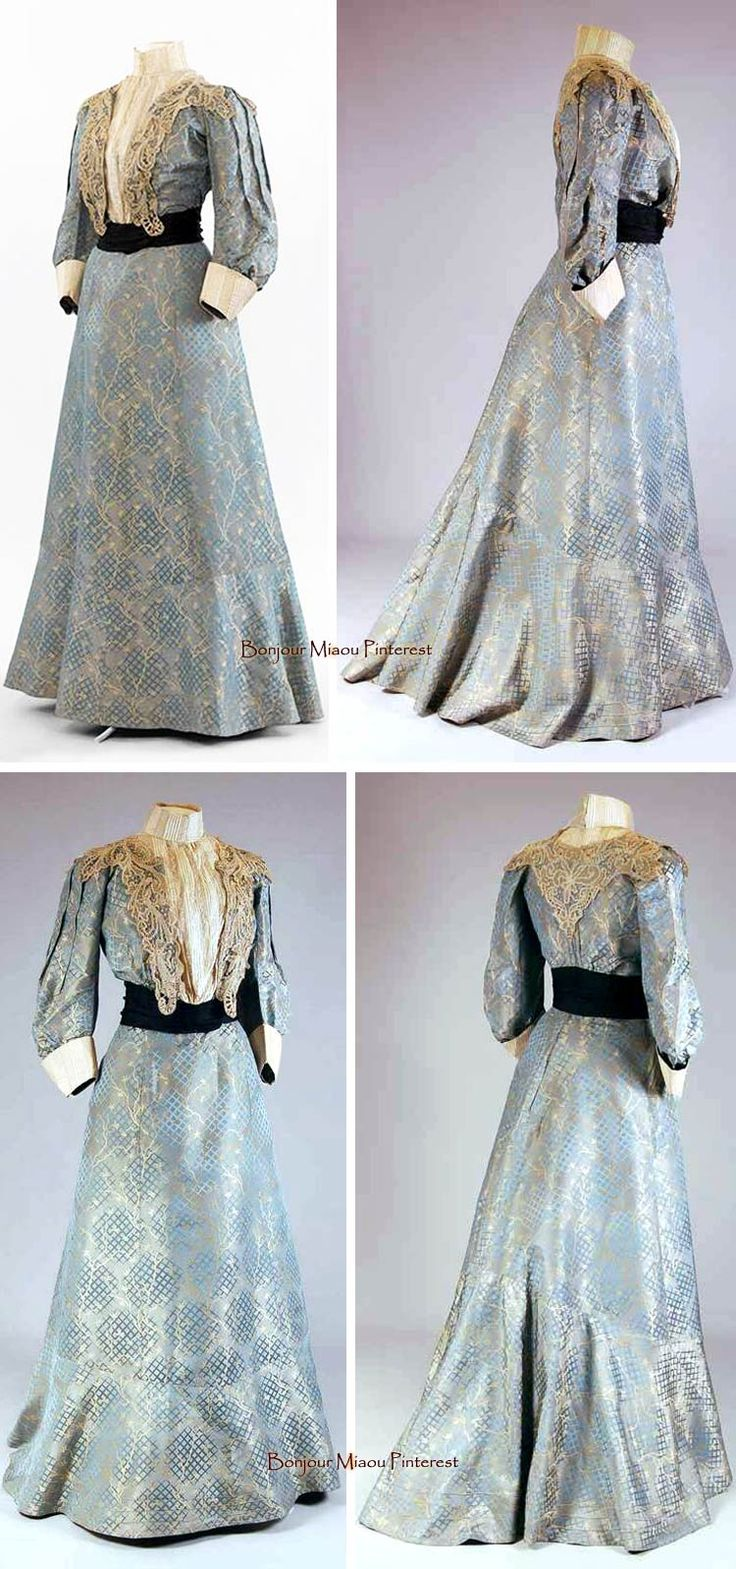 Afternoon dress, two pieces, of blue silk damask with woven diamond motifs in pale yellow. Imitation Valenciennes bobbin lace; belt. Bodice lined in beige cotton, skirt in blue silk. Mode Museum, Antwerp, via Europeana Fashion